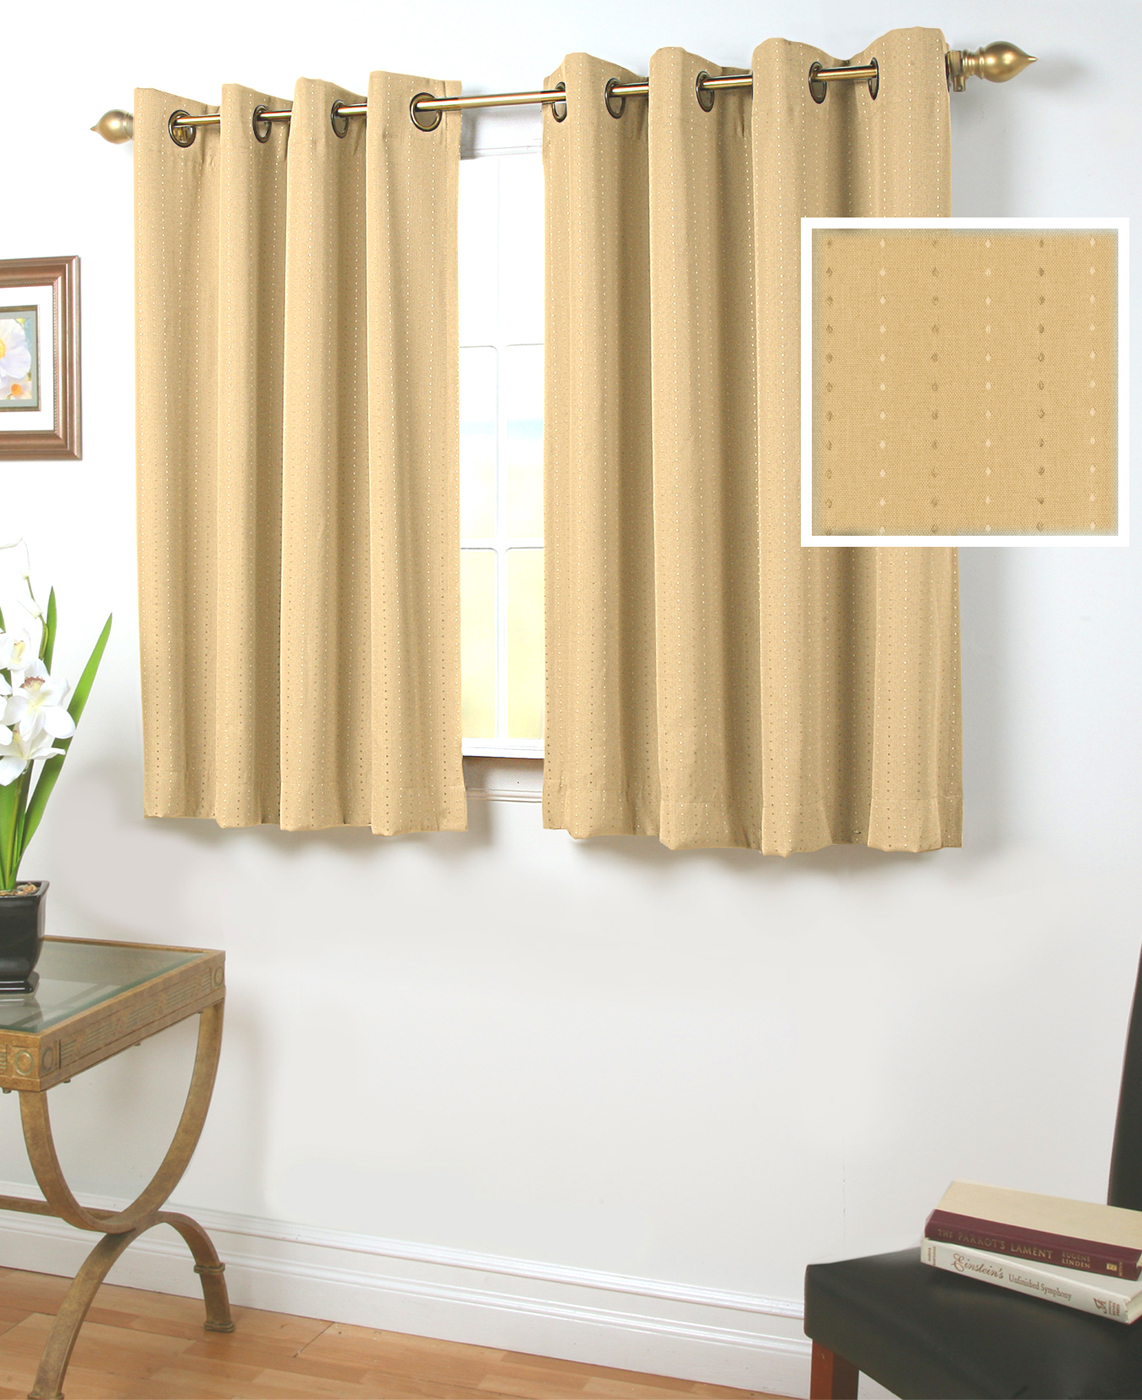 45 Inch Long Curtains Thecurtainshopcom